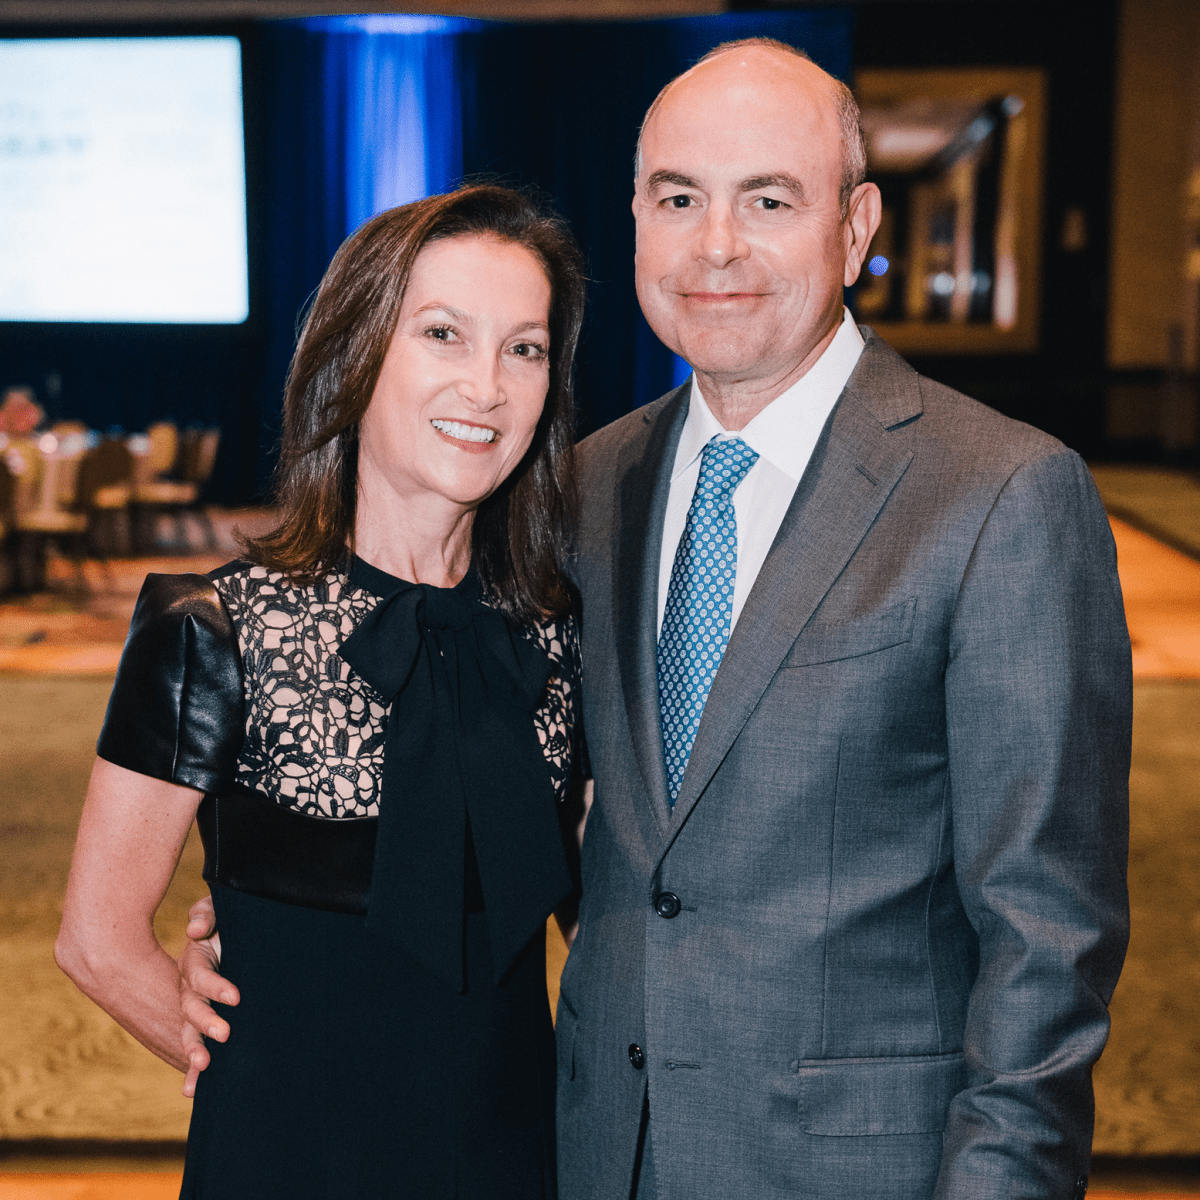 Houston, Boys & Girls Clubs' Great Futures Dinner, September 2015, Patti & Mike Morgan